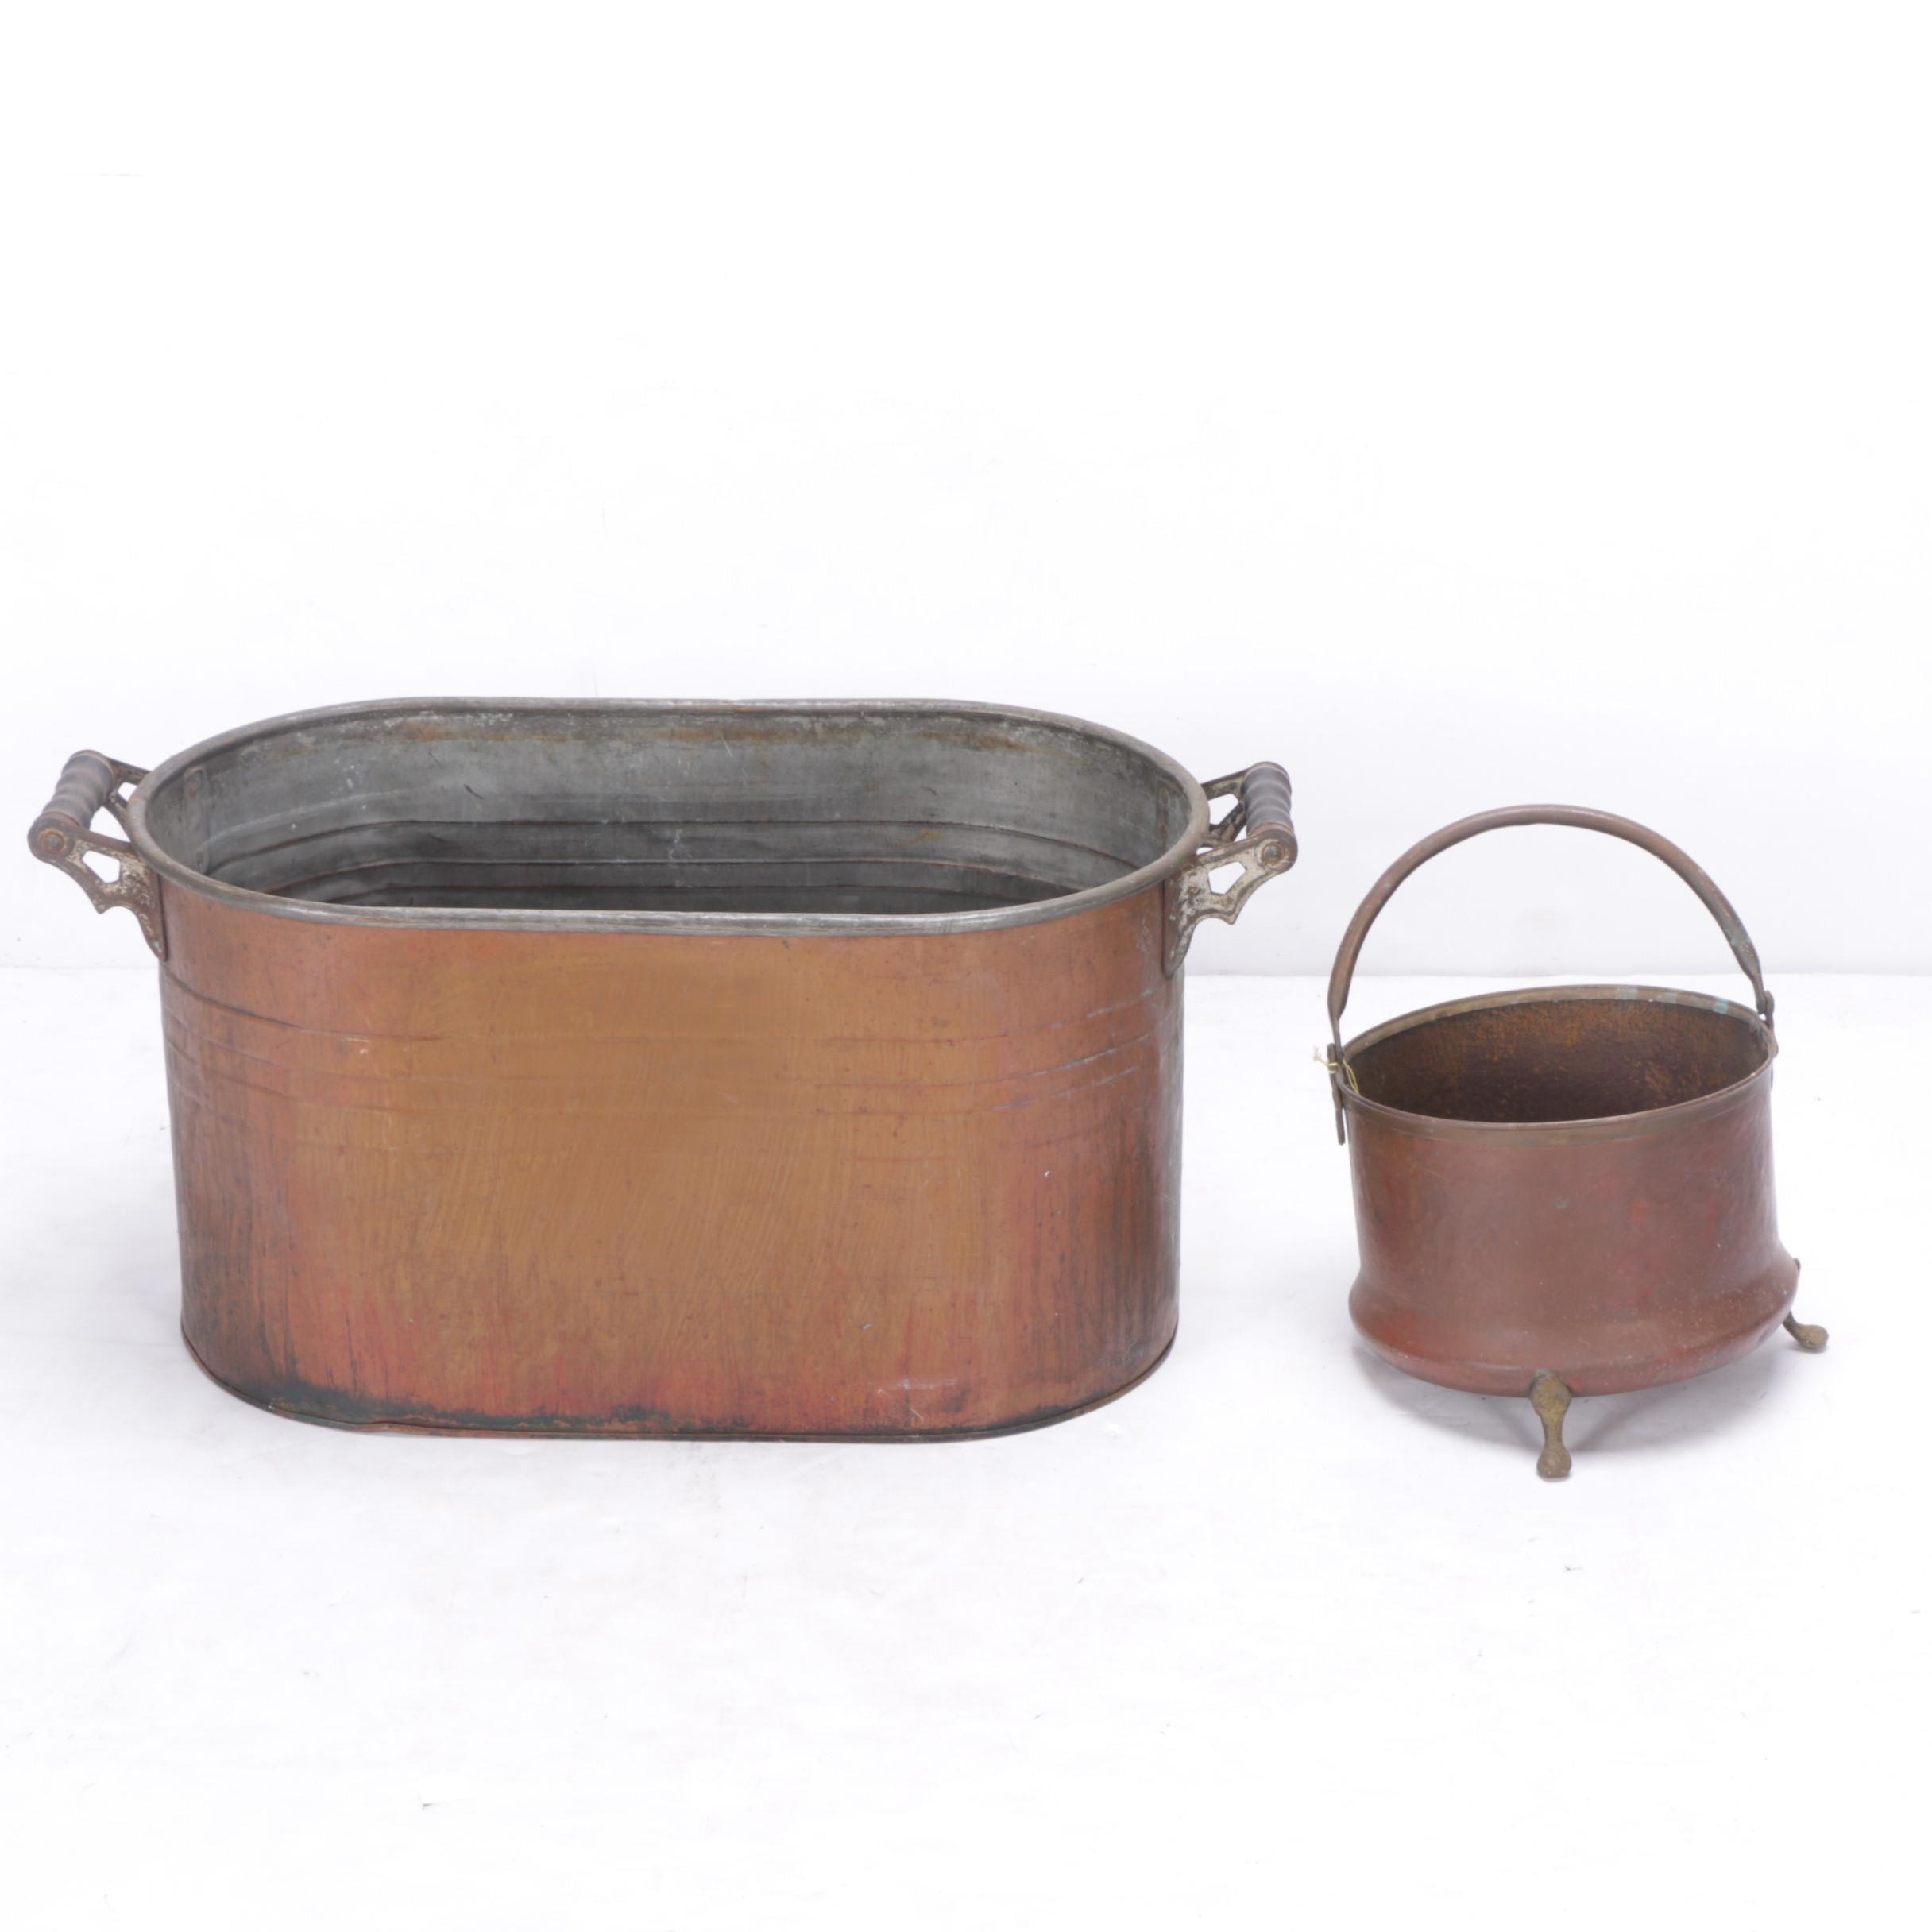 Vintage Copper Boiler and Footed Cauldron